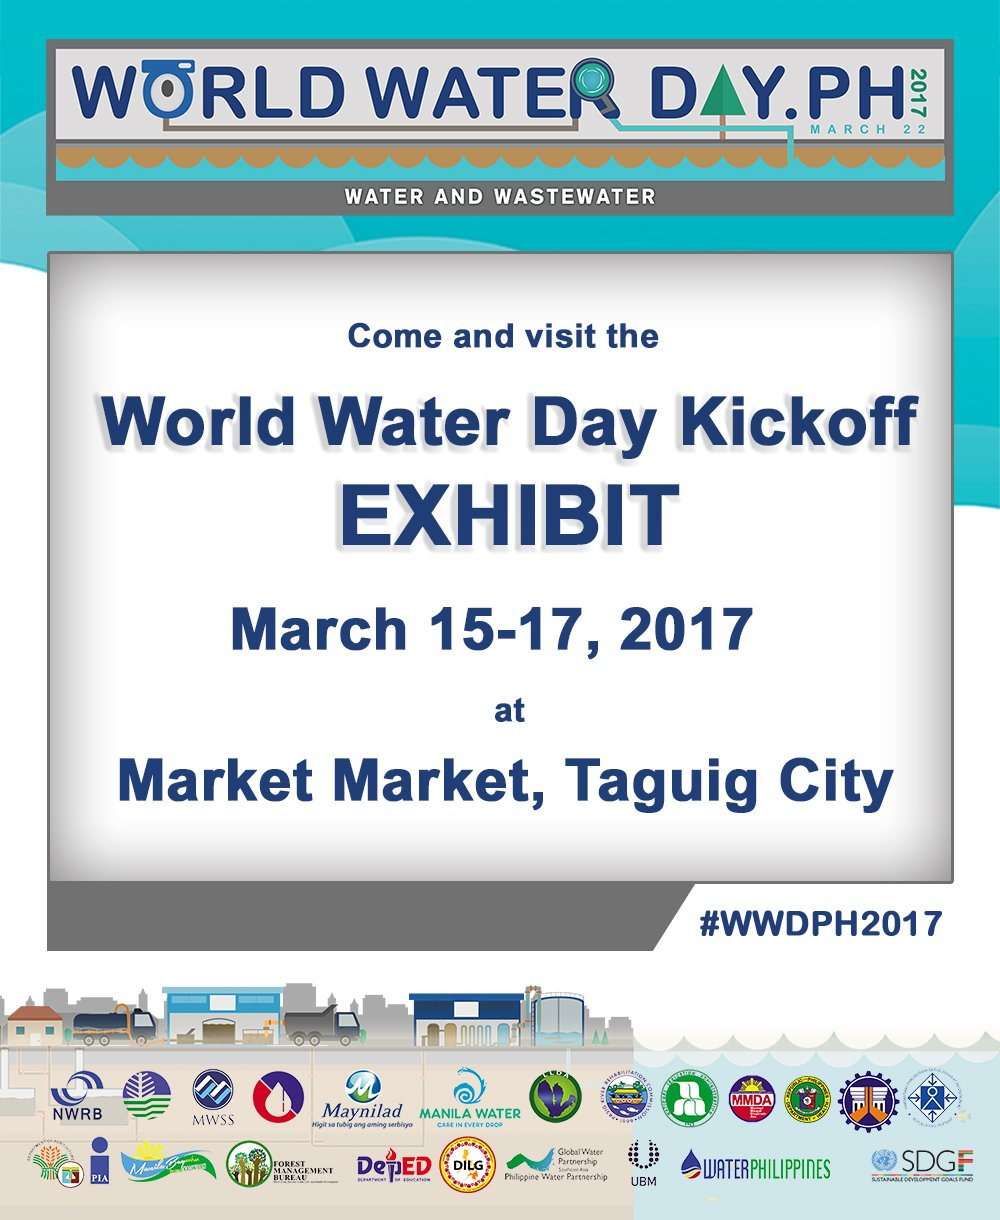 Come and visit the World Water Day Exhibit! #WWDPH2017 https://t.co/P7iIr8IL9K